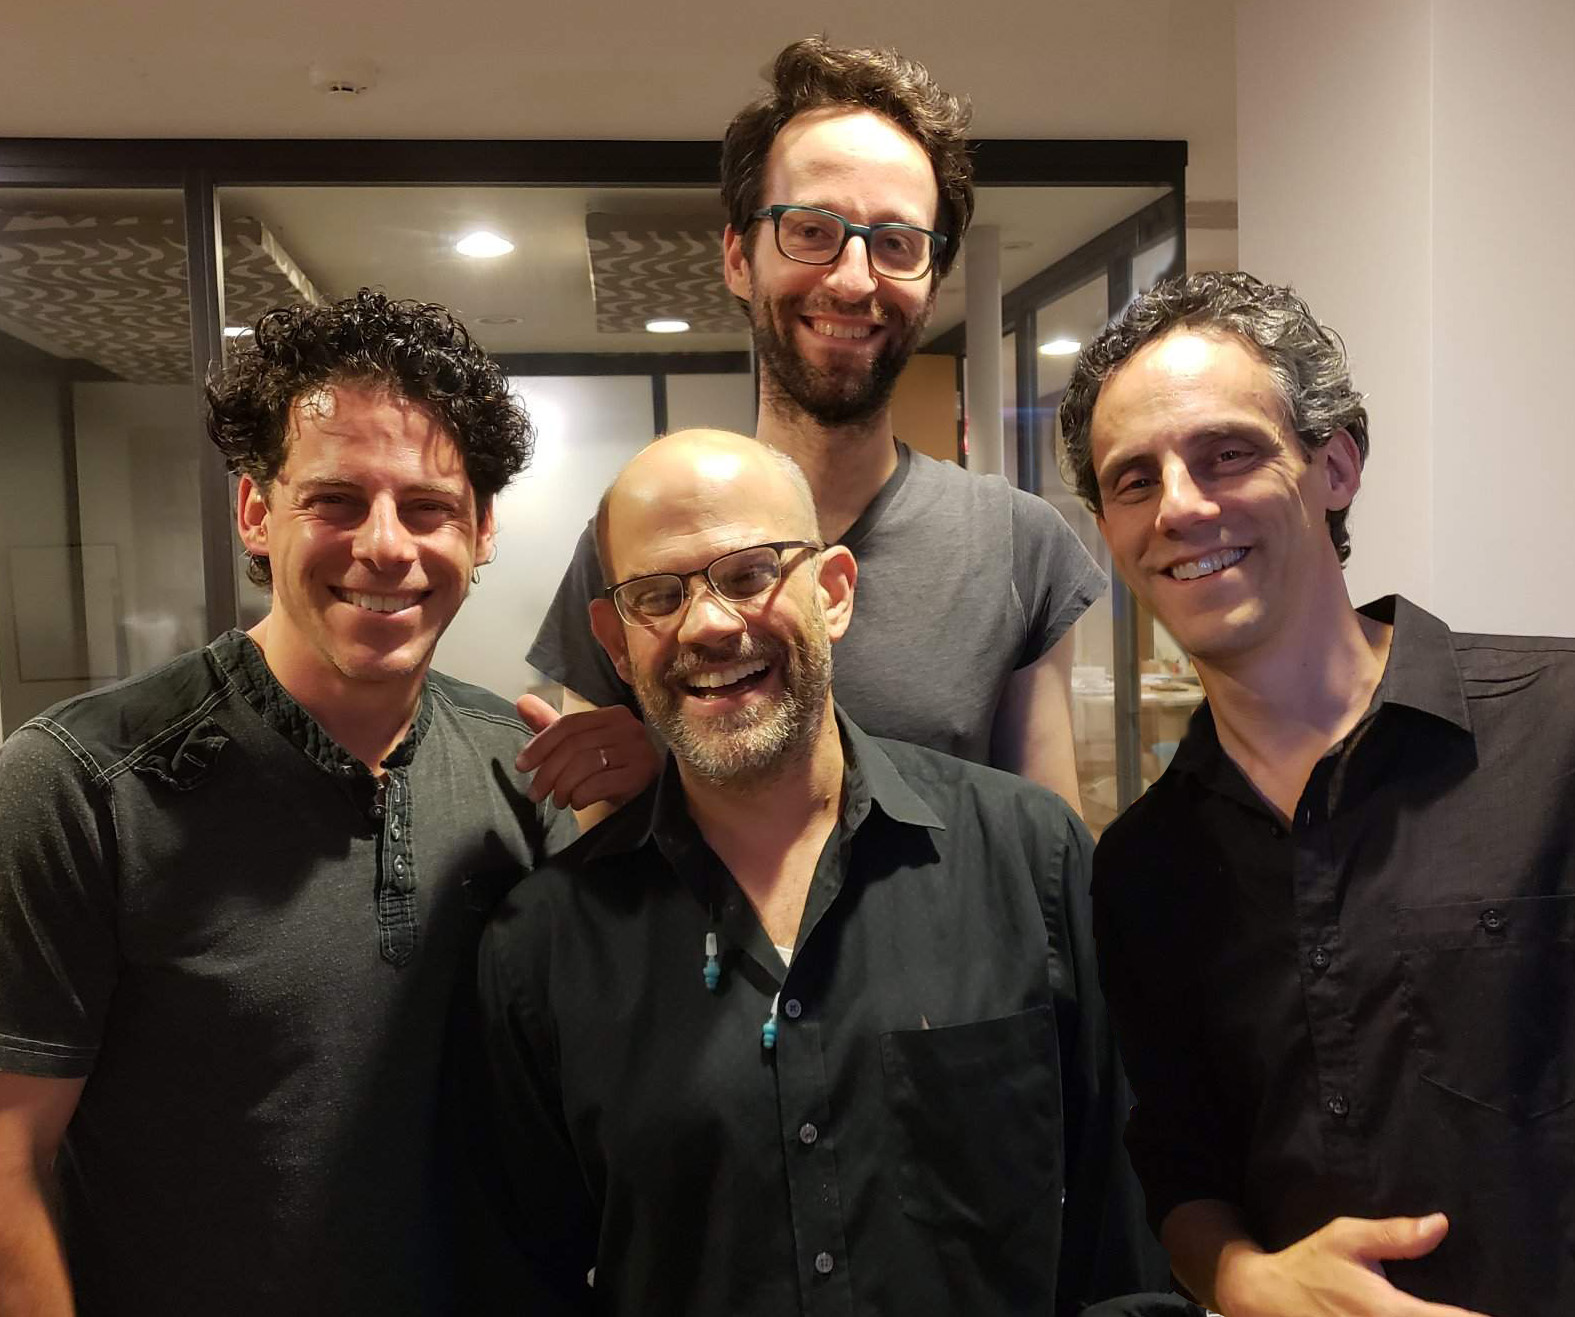 Meet the band… - Our rocking house band is (l-r) Jon Rubin (bass), Brian Gelfand (keyboards), Brian Indig (drums), and Cliff Rubin (guitar). Check out their eclectic list (below) of 150 songs for you to choose from! Or just come to enjoy - you'll have a great time even if you don't get up and sing. You won't find a more fun night out this summer - don't miss it!For more about the band, check out CenterStageLBK.com!